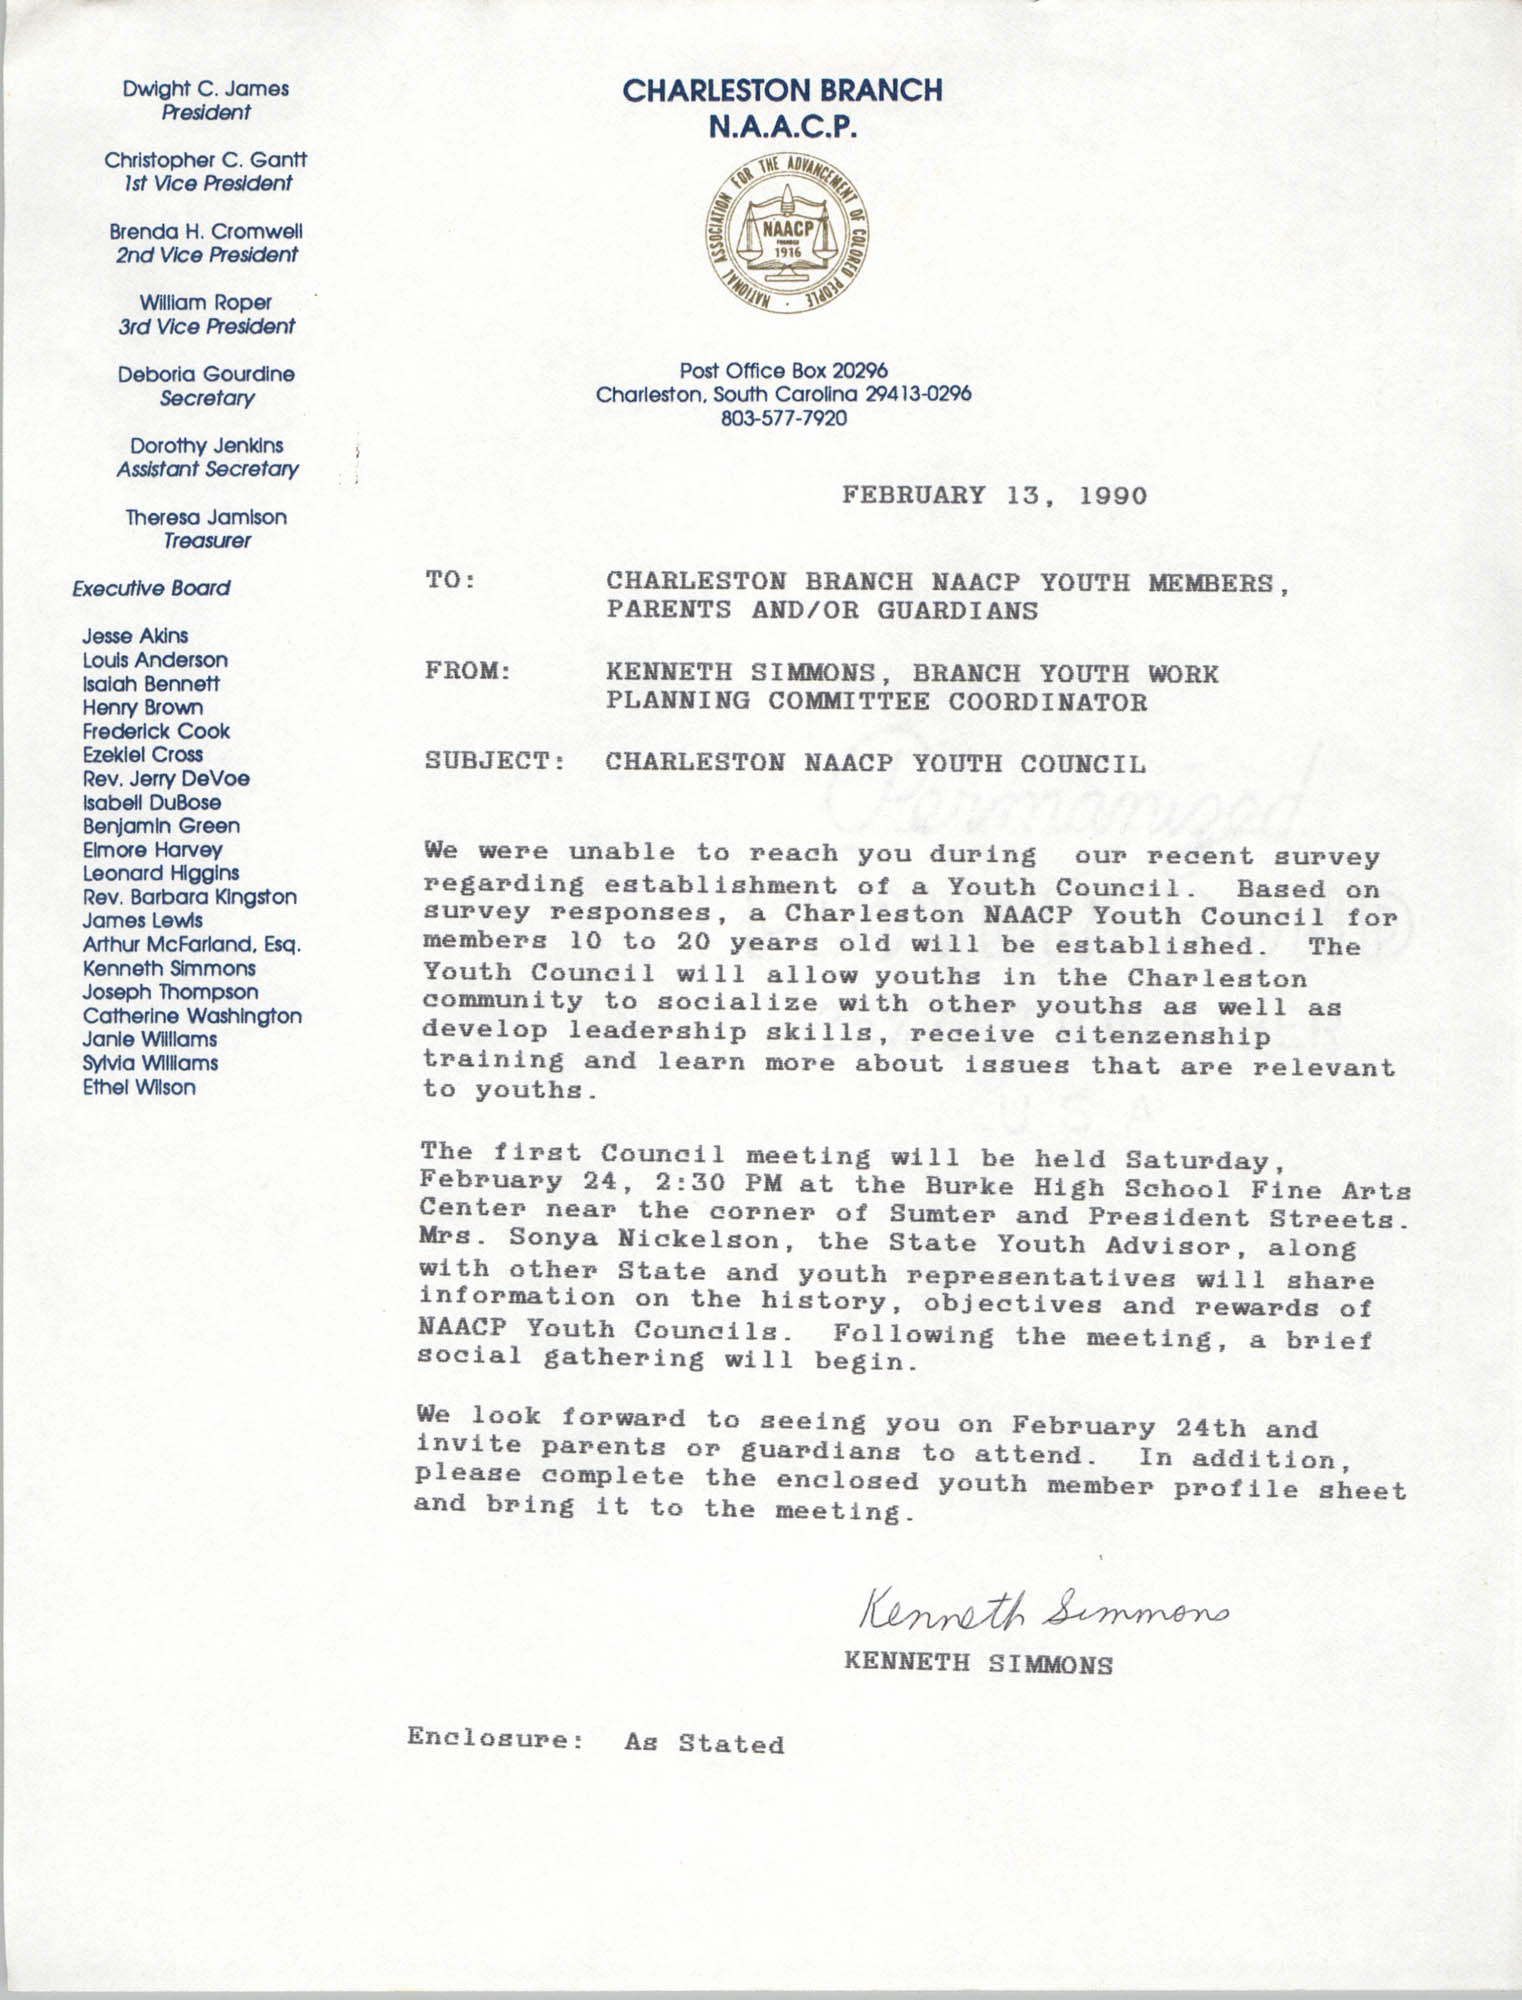 Letter from Kenneth Simmons to Charleston Branch NAACP Youth Members and Guardians, February 13, 1990